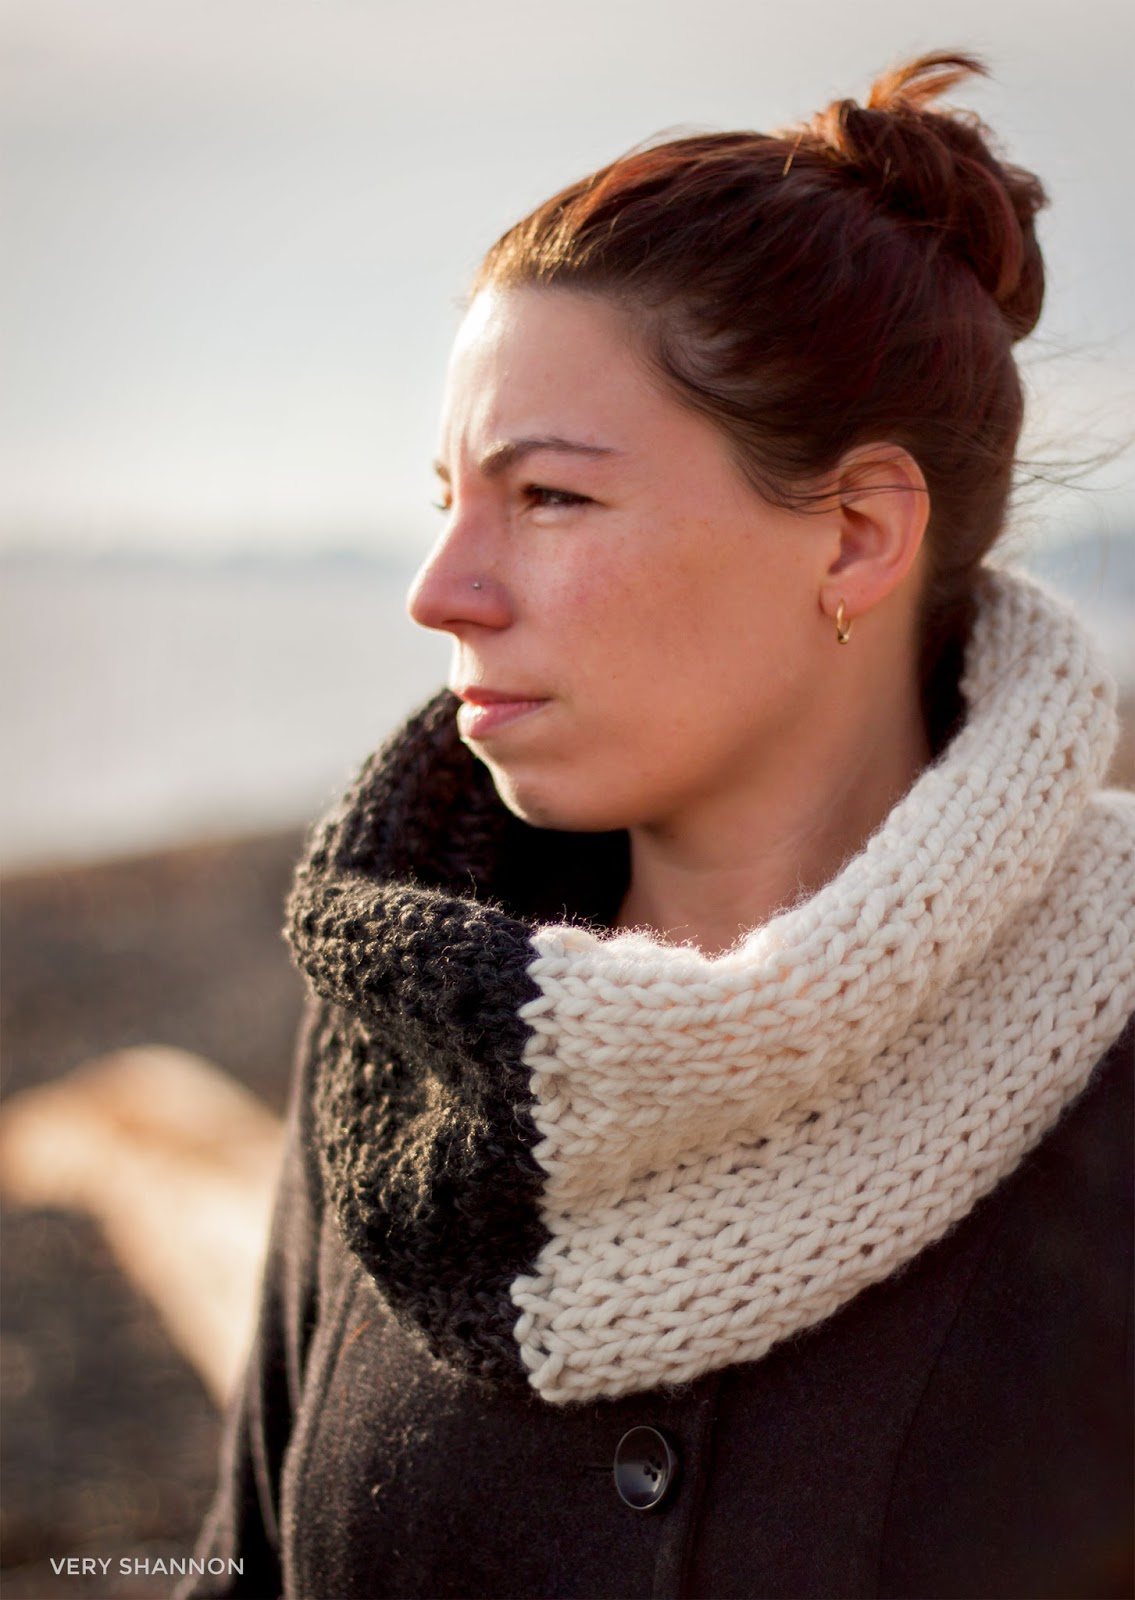 FARBE Cowl - FREE knittng pattern by Shannon Cook || VeryShannon.com #knitting #pattern #free